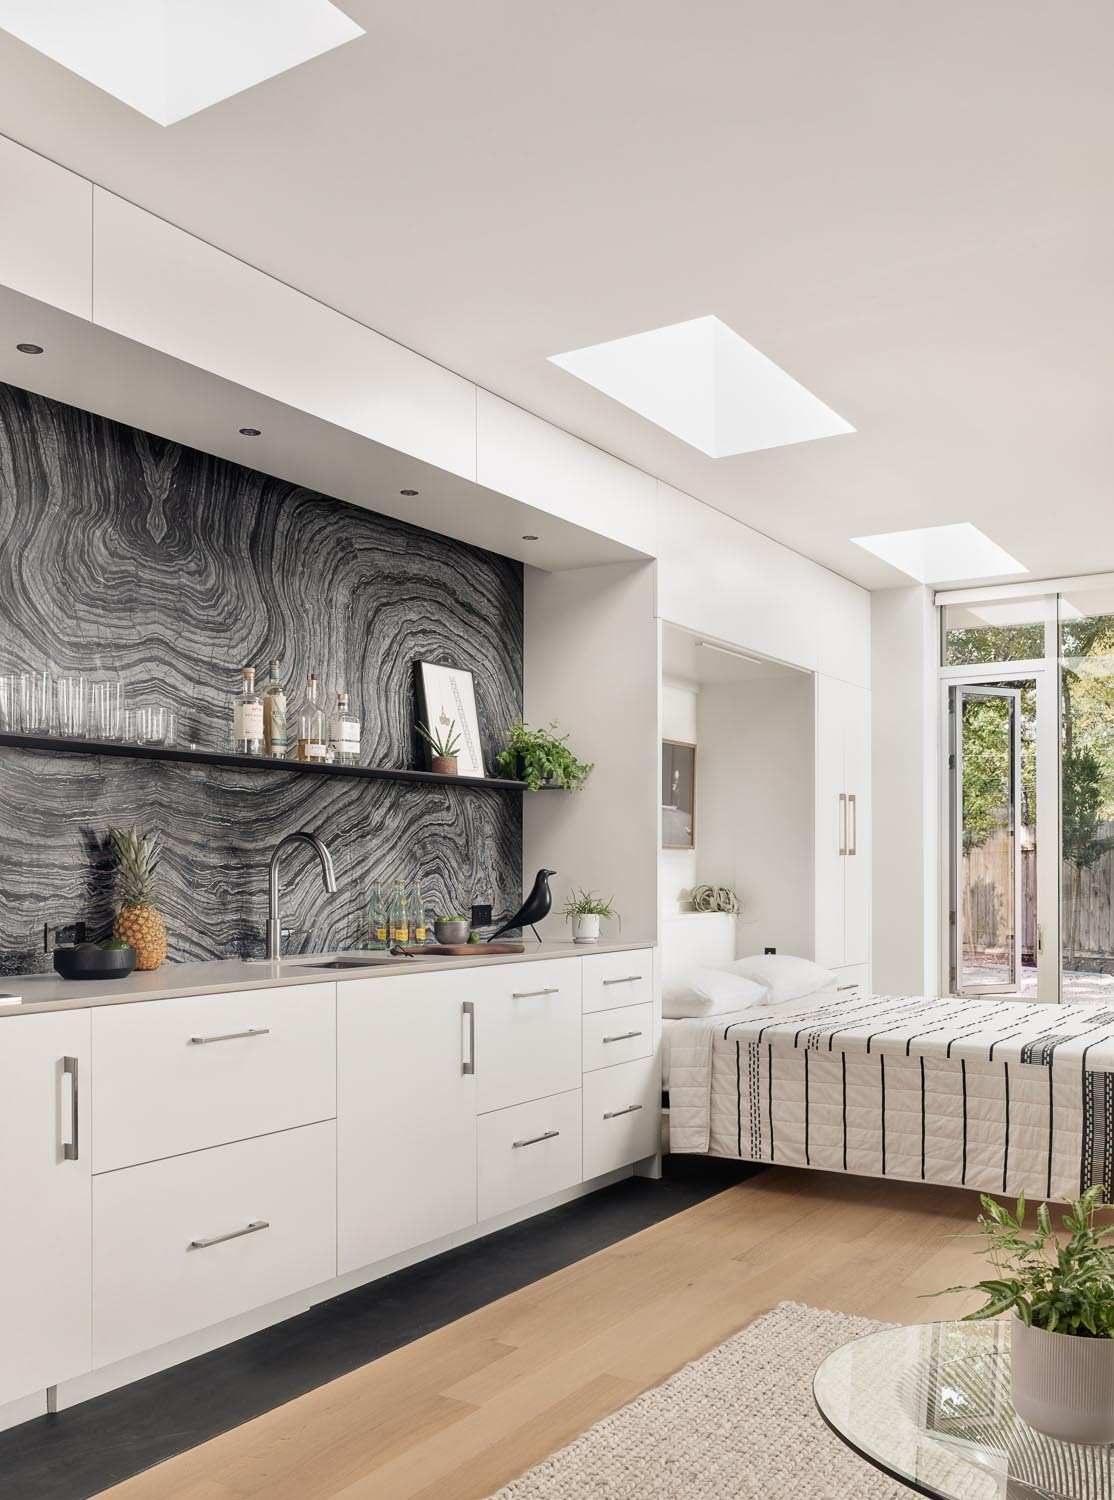 A modern accessory dwelling unit (ADU), also known as a guest house, has a fold-down murphy be next to the kitchen.